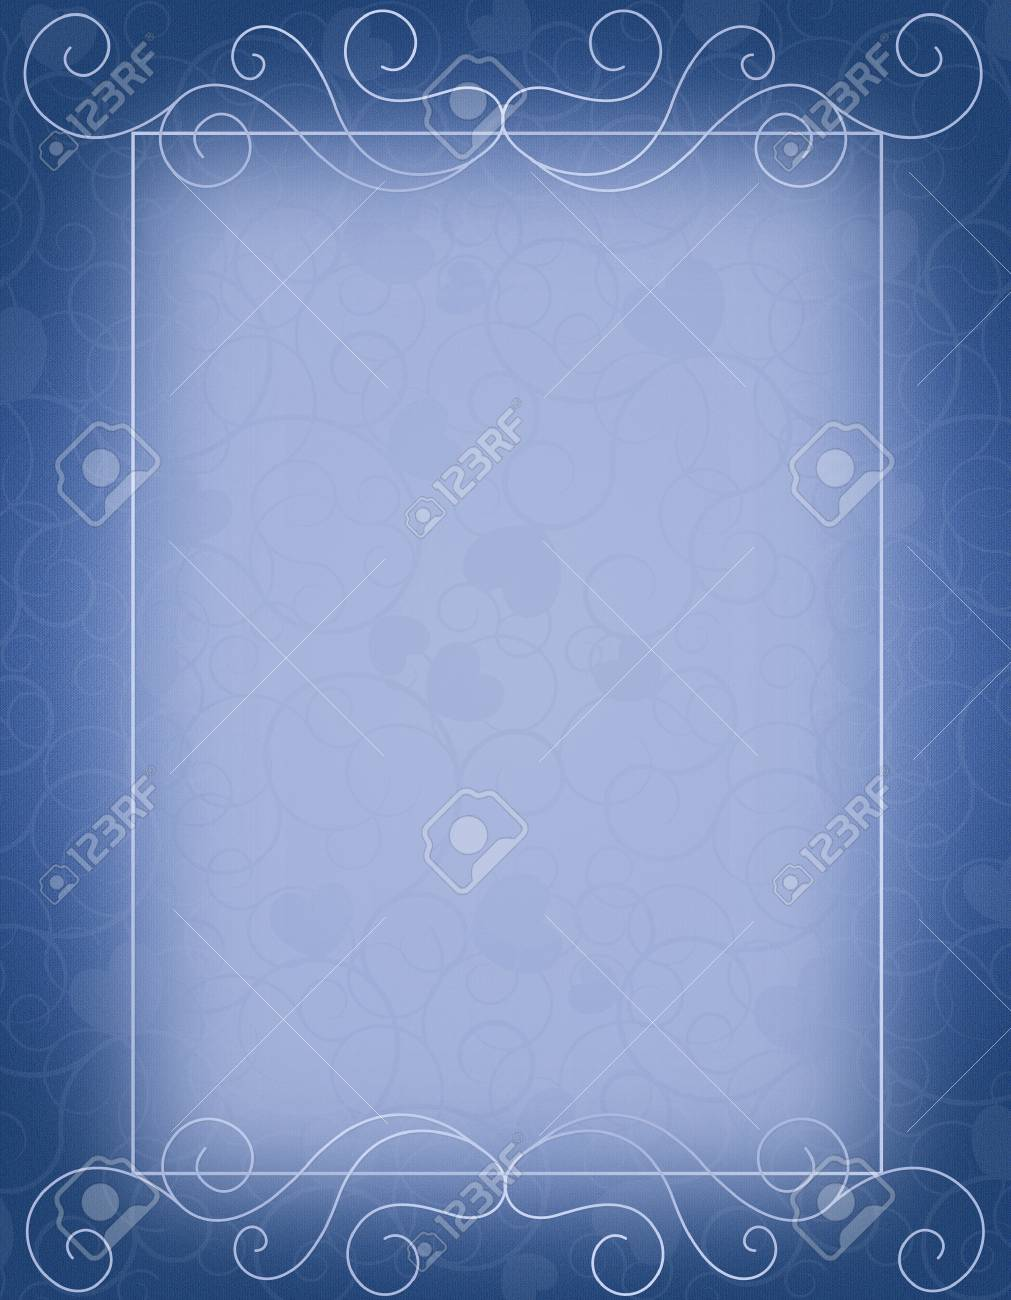 elegant blue empty background with ornamental frame perfect